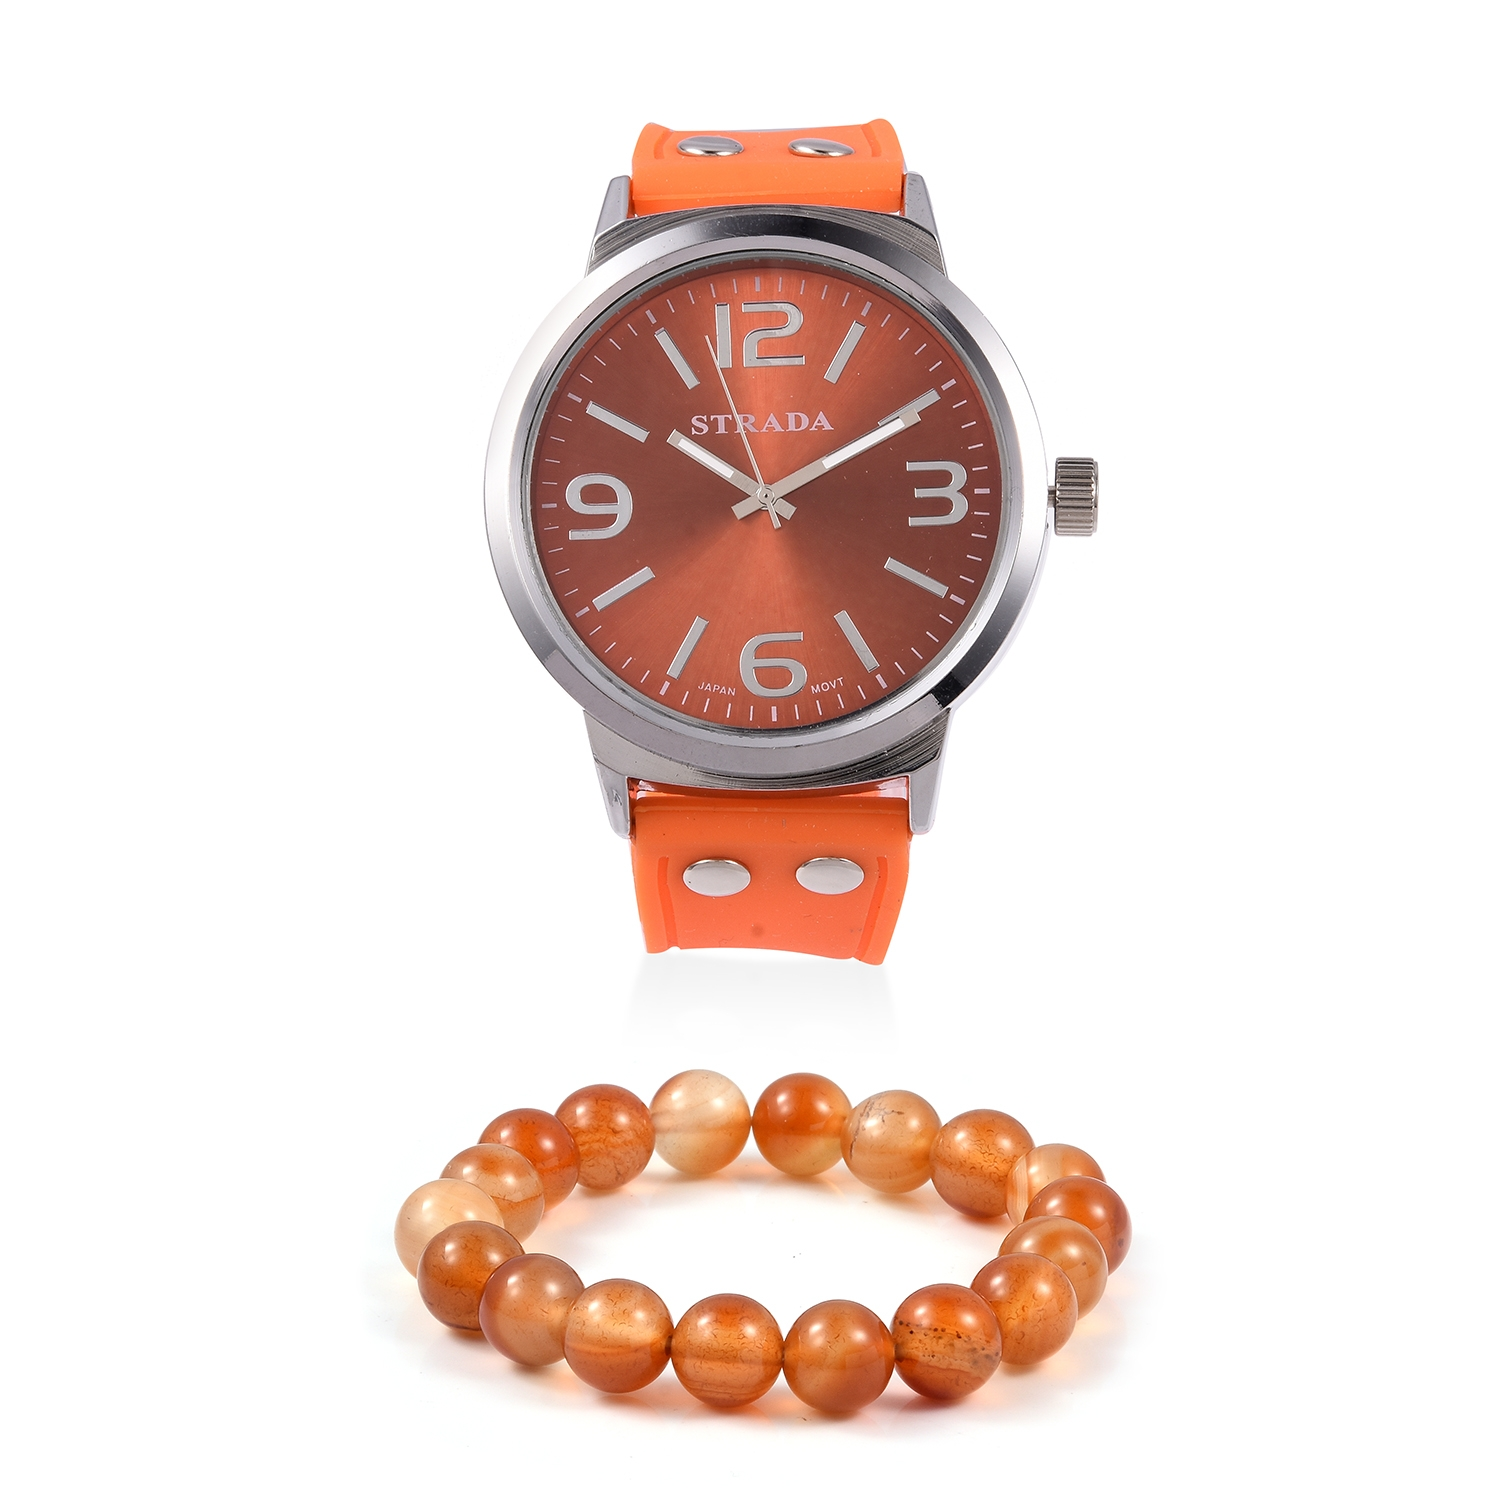 STRADA Japanese Movement Watch with Orange Silicone Band and Stainless  Steel Back   Enhanced Orange Quartz 303fd3c05cae6